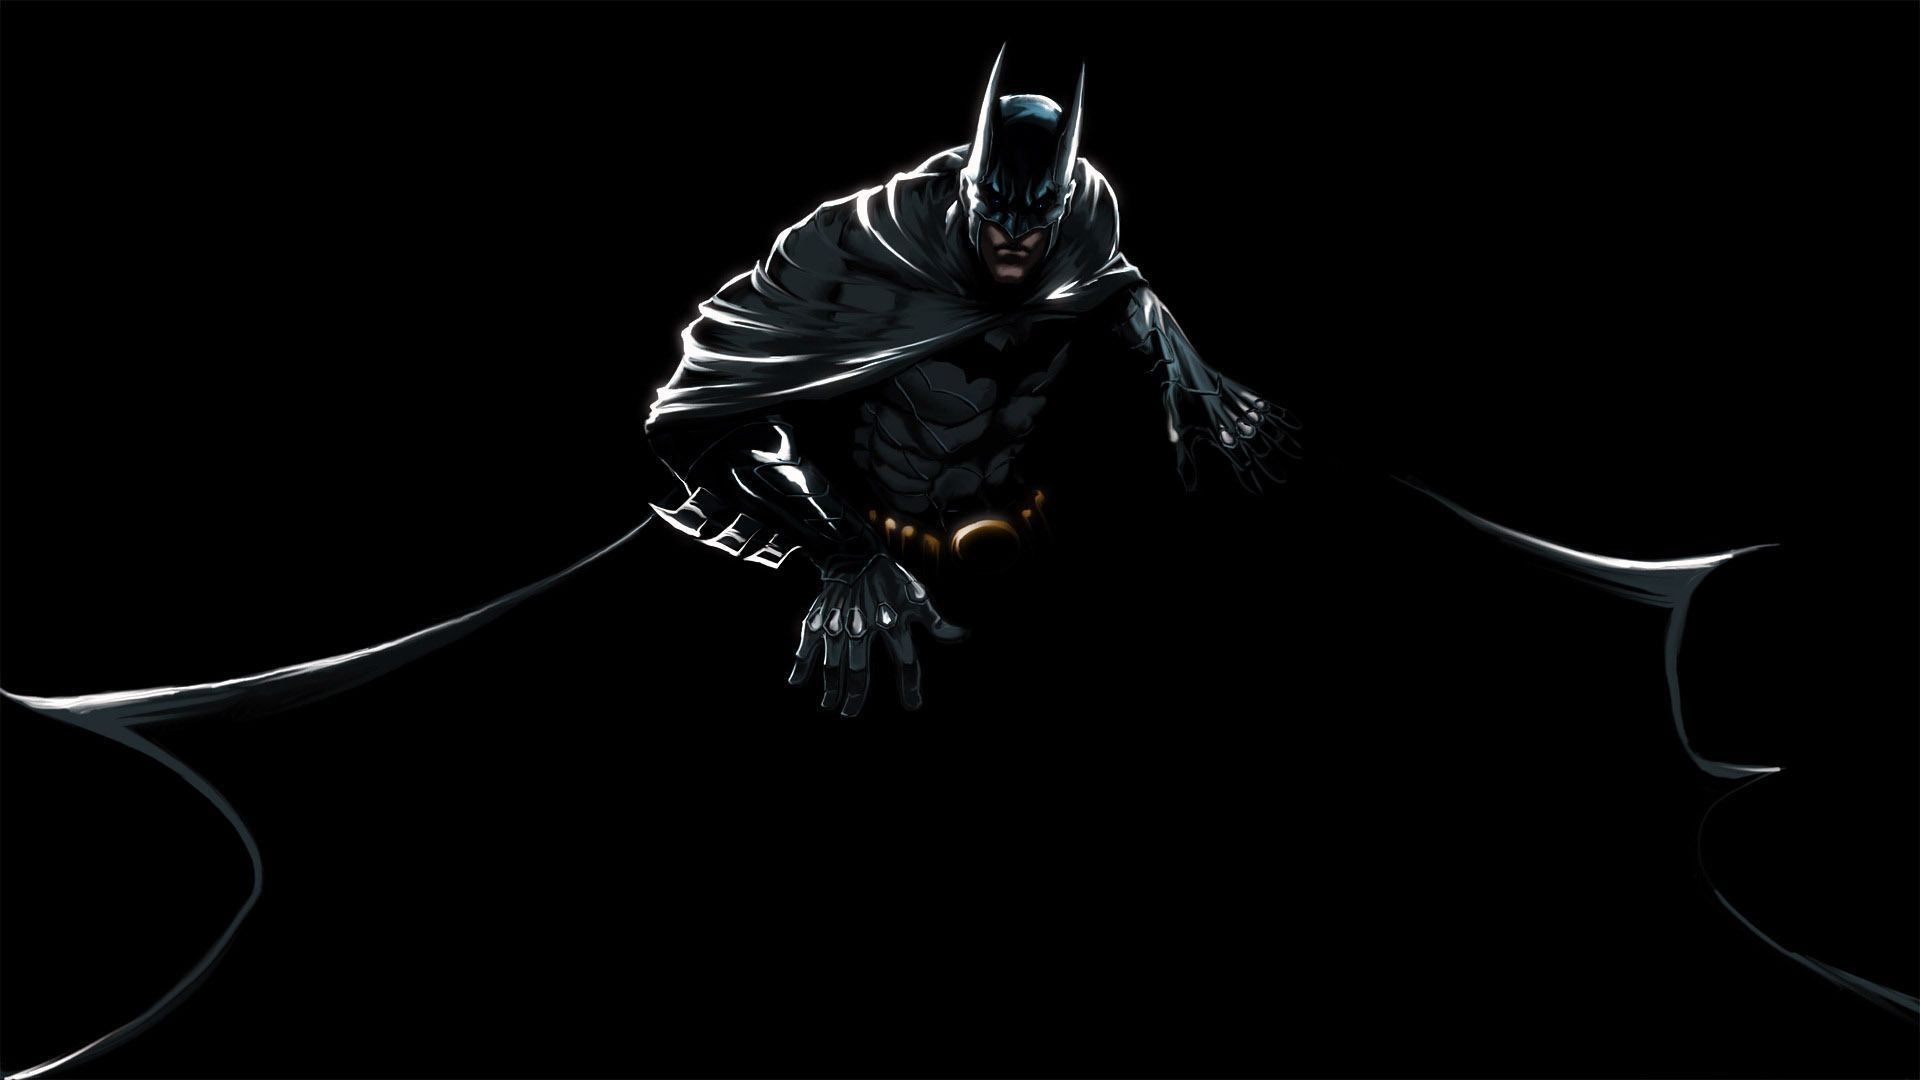 30 Creative Batman Black And White Wallpapers In High Quality